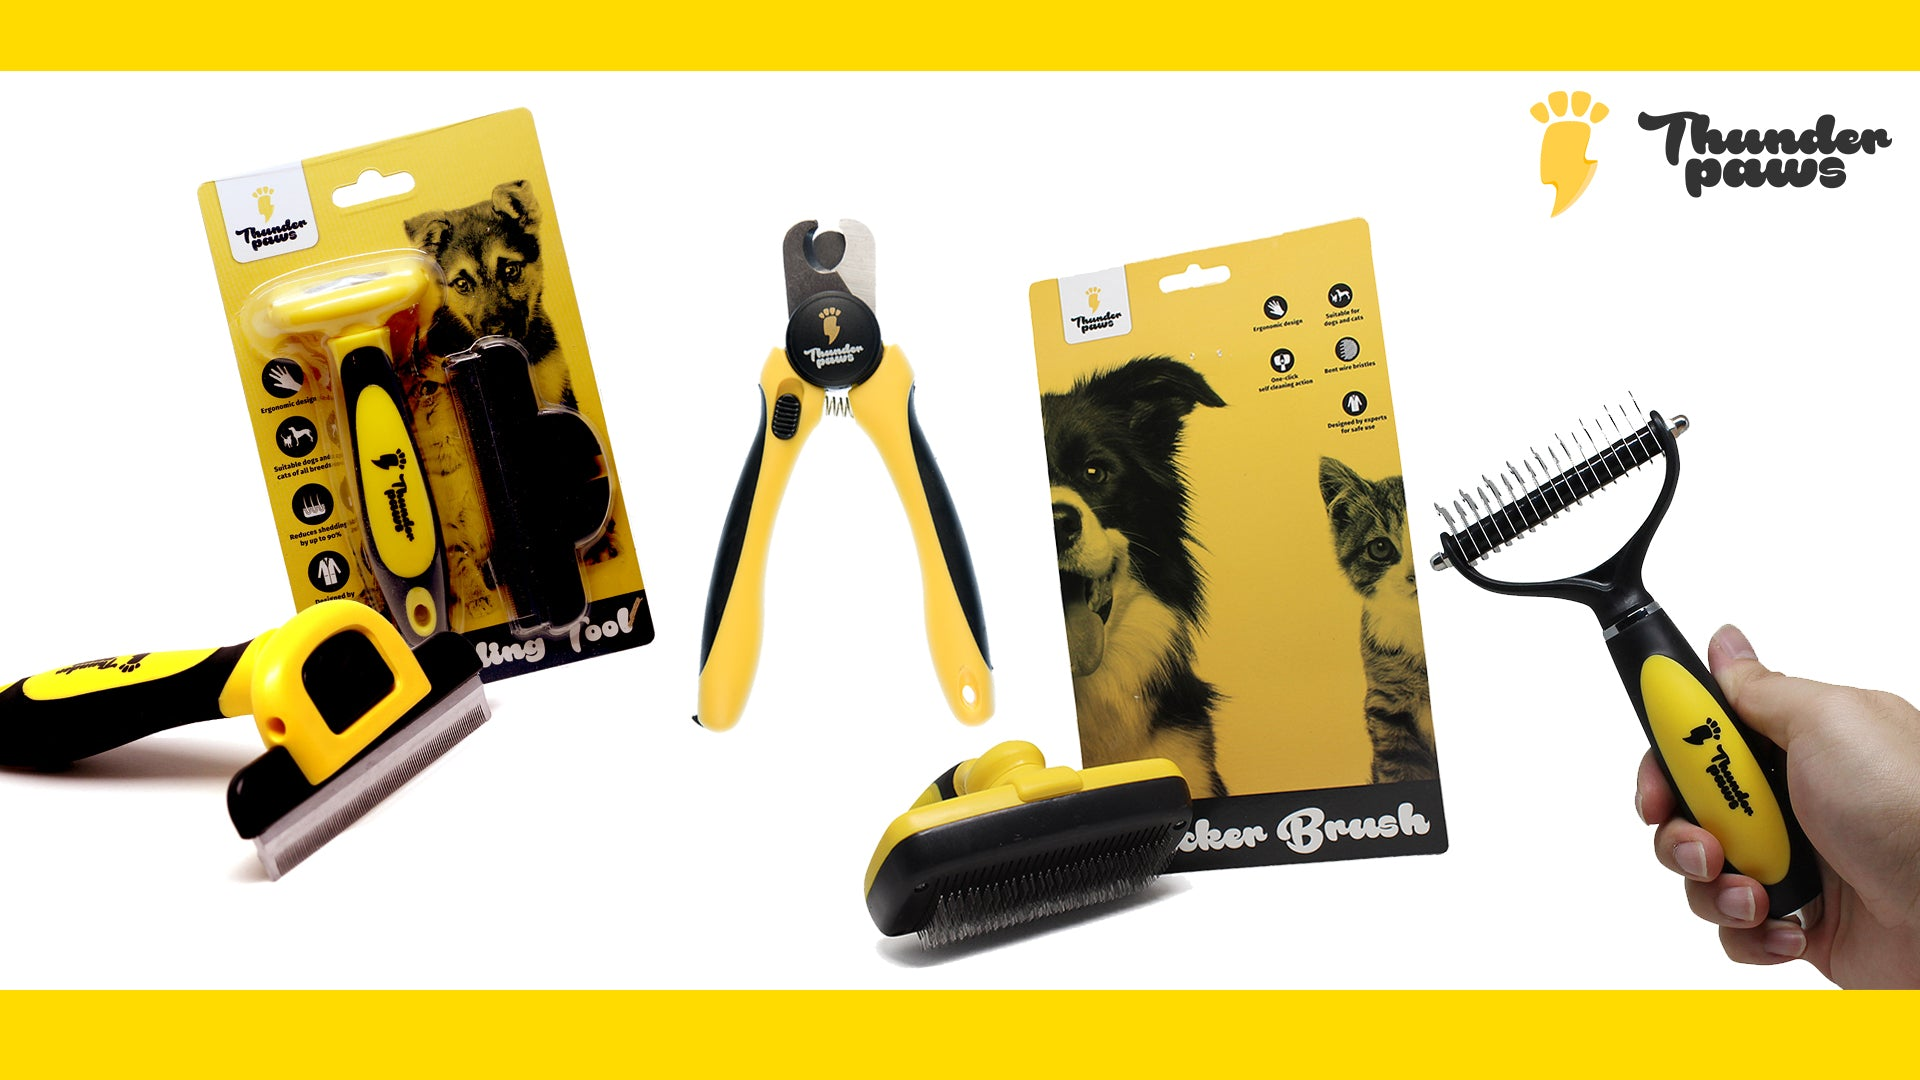 Thunderpaws Grooming Kit Contest!